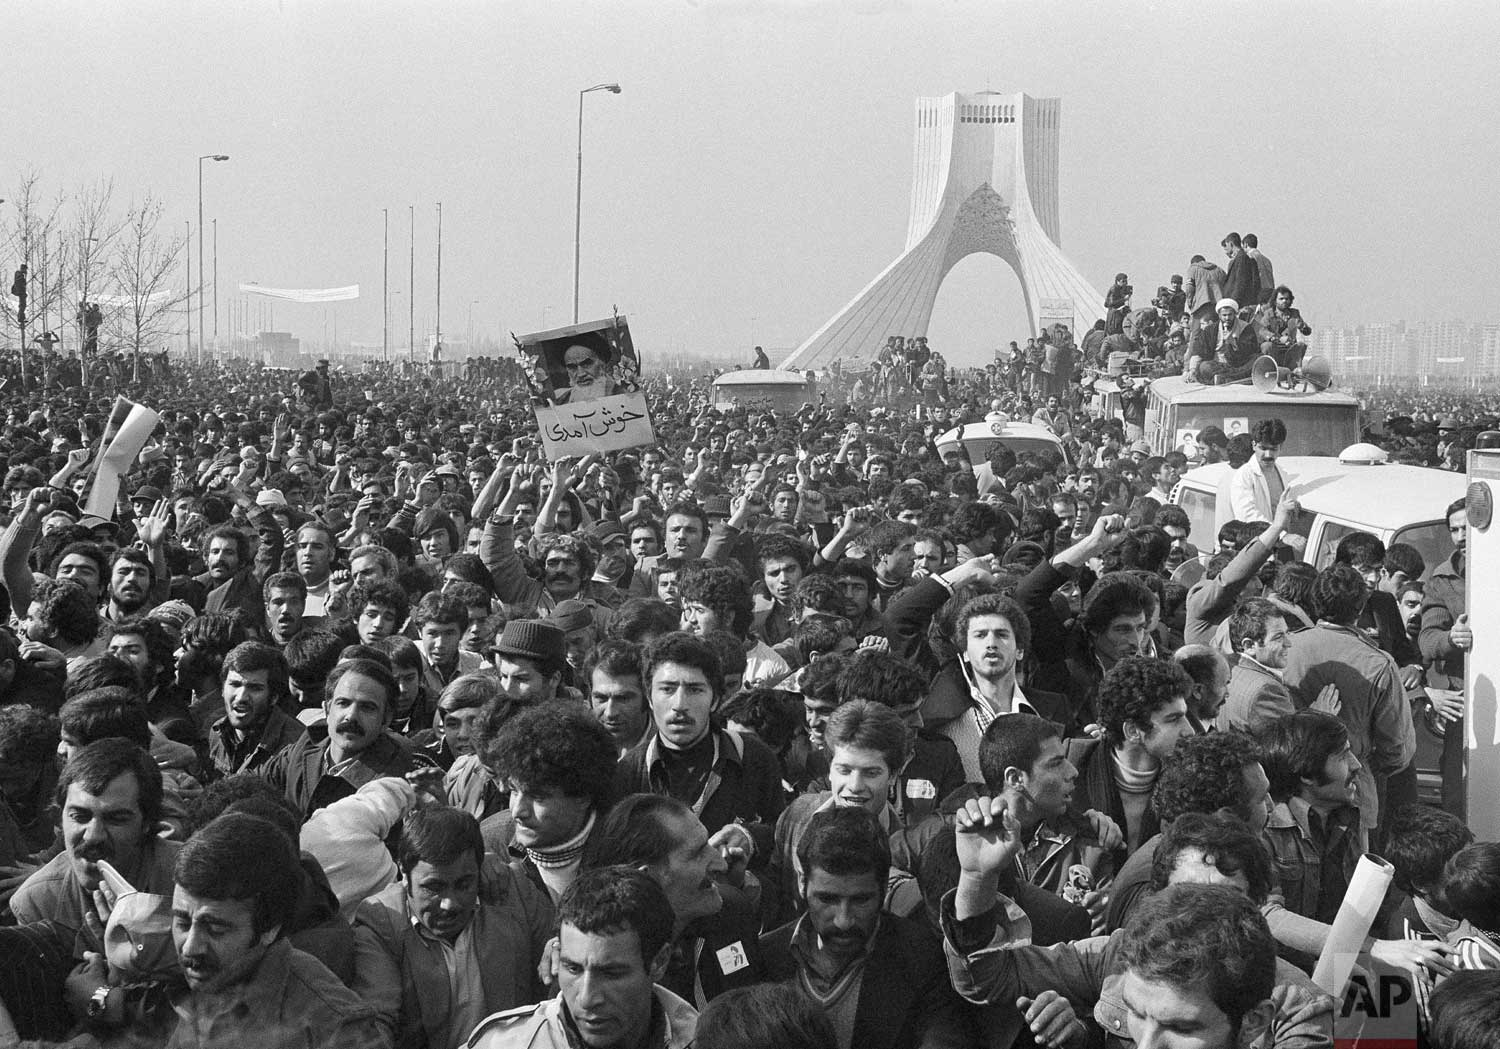 In this Feb. 1, 1979 photo, the motorcade of Ayatollah Ruhollah Khomeini is lost among the throngs of supporters at the Shayad, a landmark memorial to the shah, near the airport in Tehran, Iran. (AP Photo/FY)